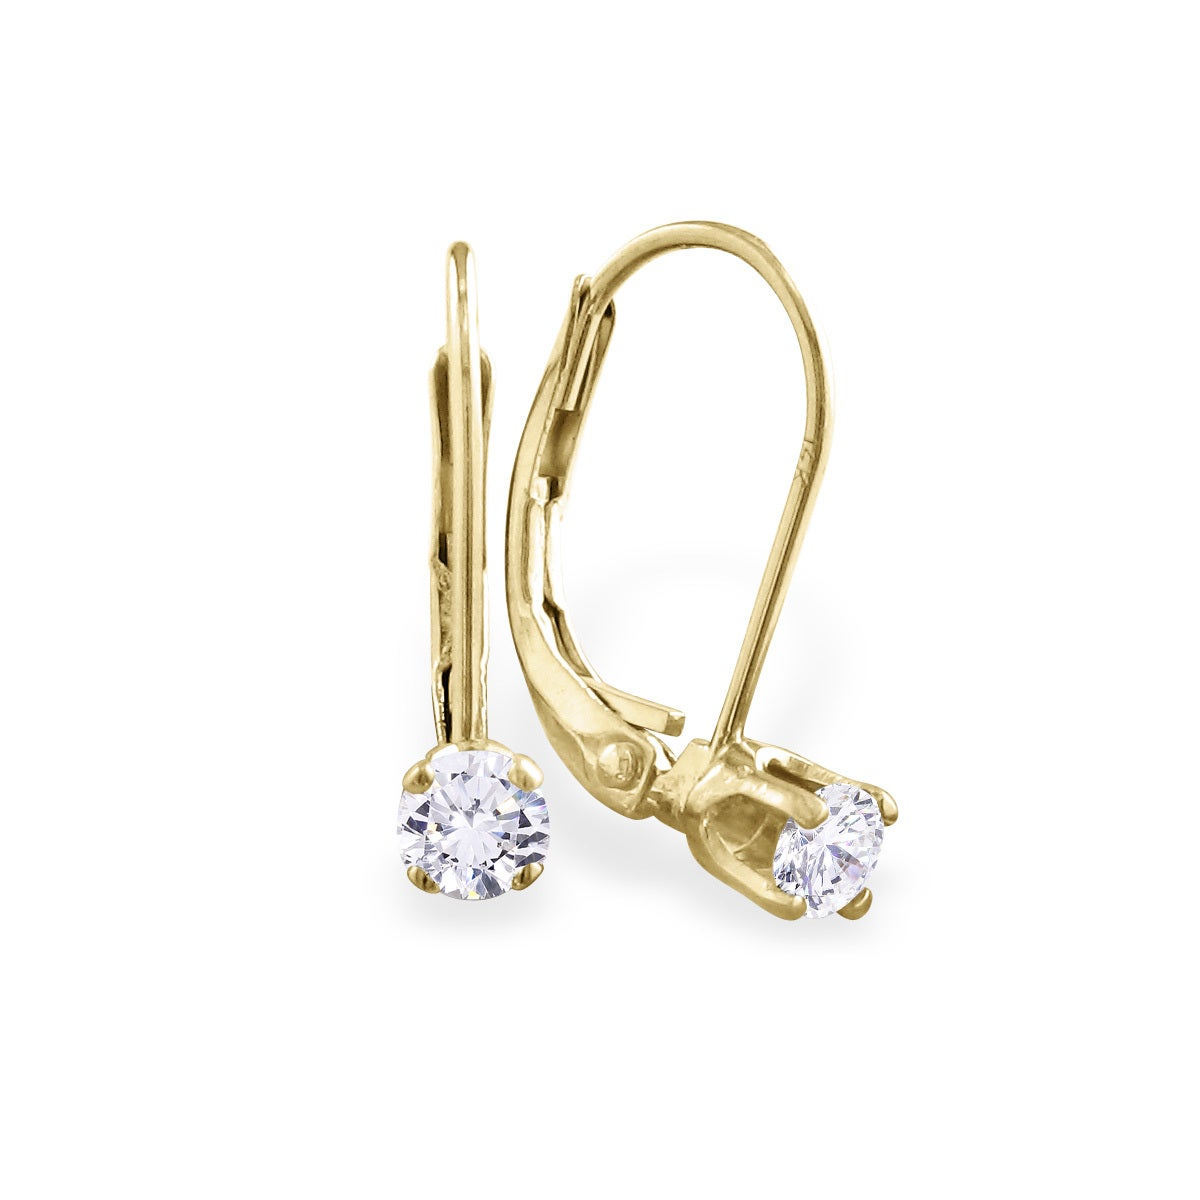 pearl donna copenhagen rundt gold guld earrings oreringe kobra carat in shop with plated pearls perle